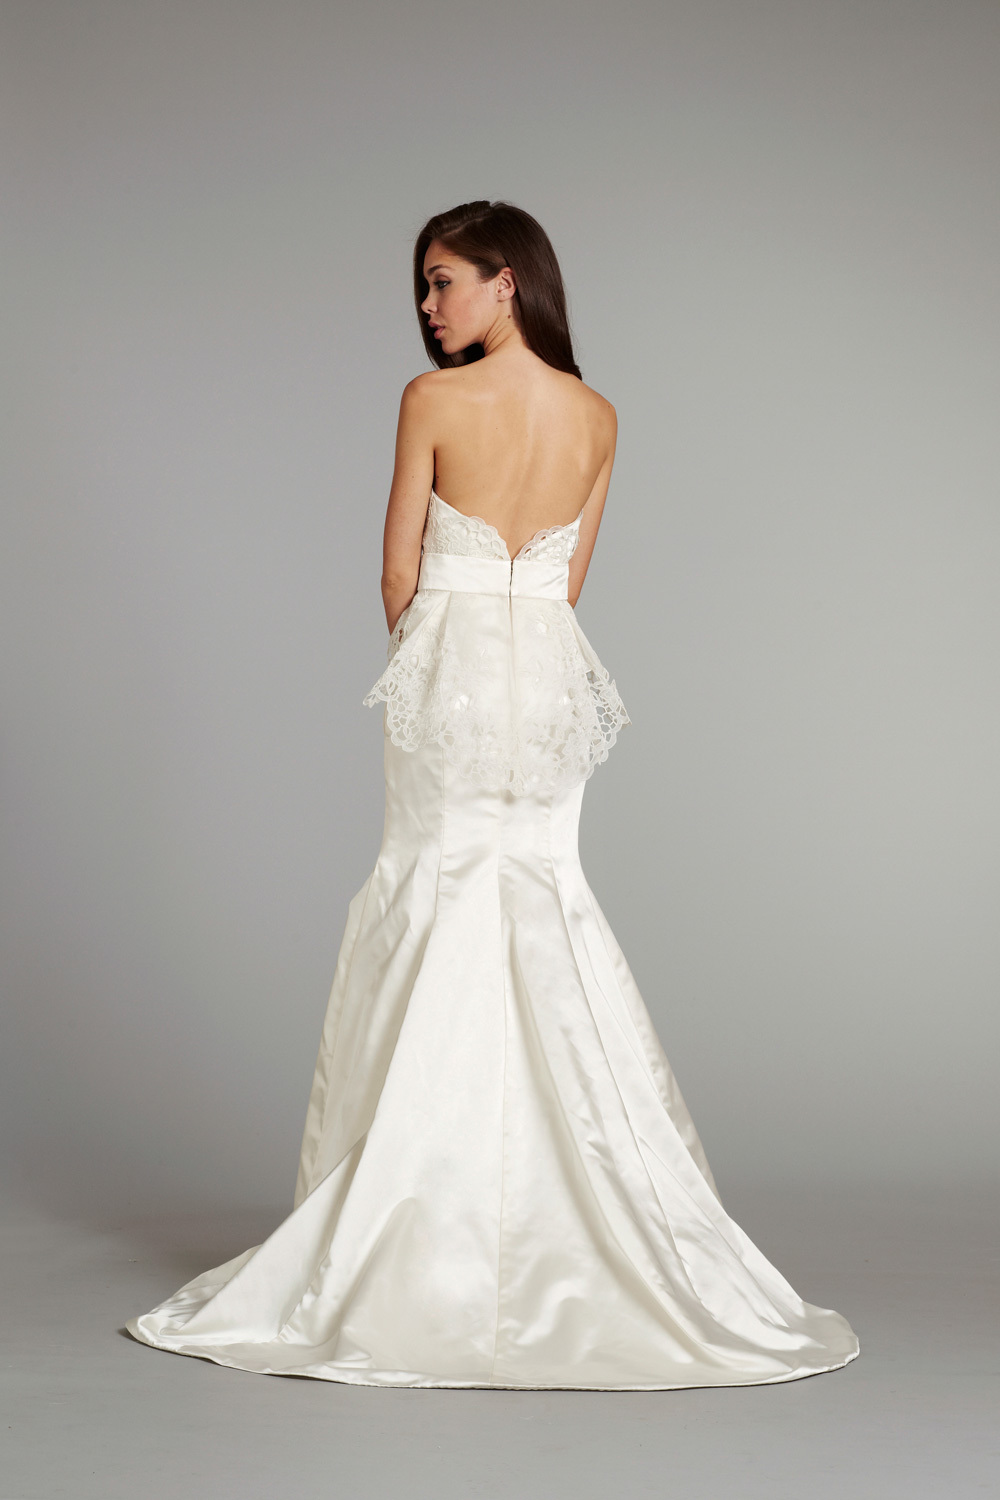 bridal gown wedding dress jlm hayley paige fall 2012 sloane front